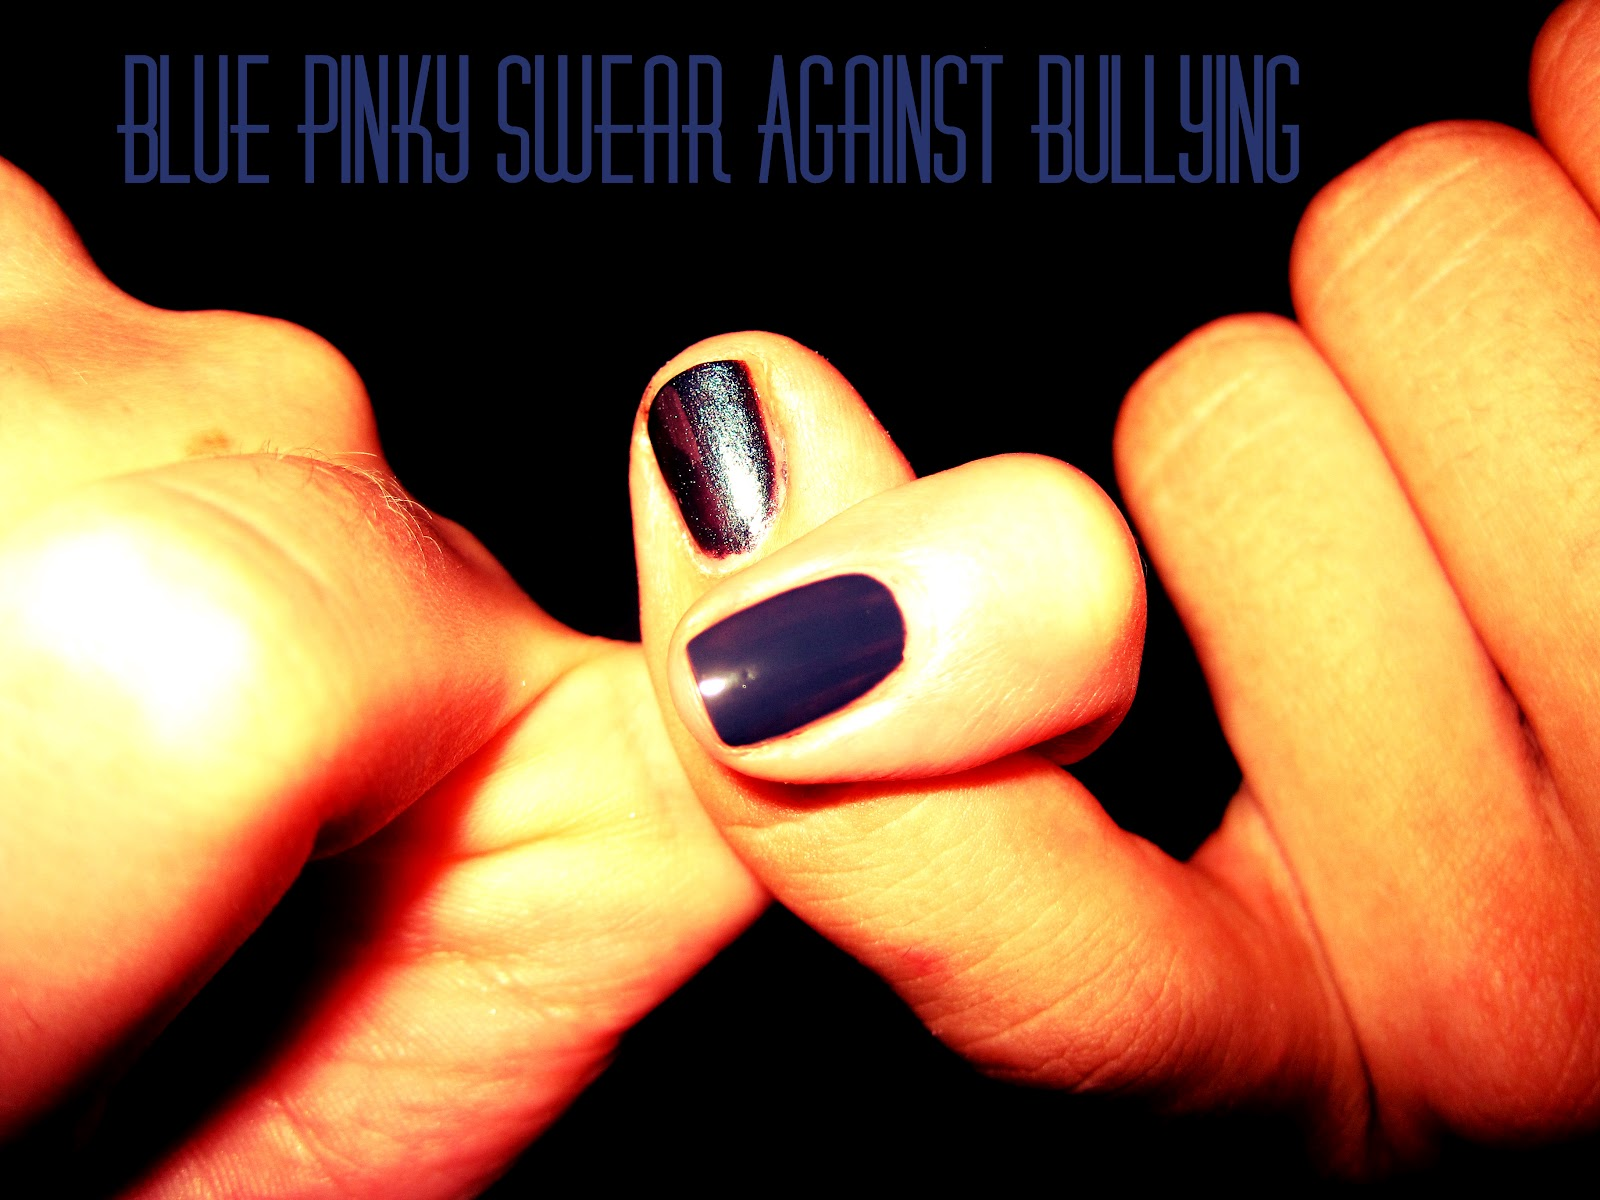 The Treasure Chest: Blue Pinky Swear Against Bullying Campaign